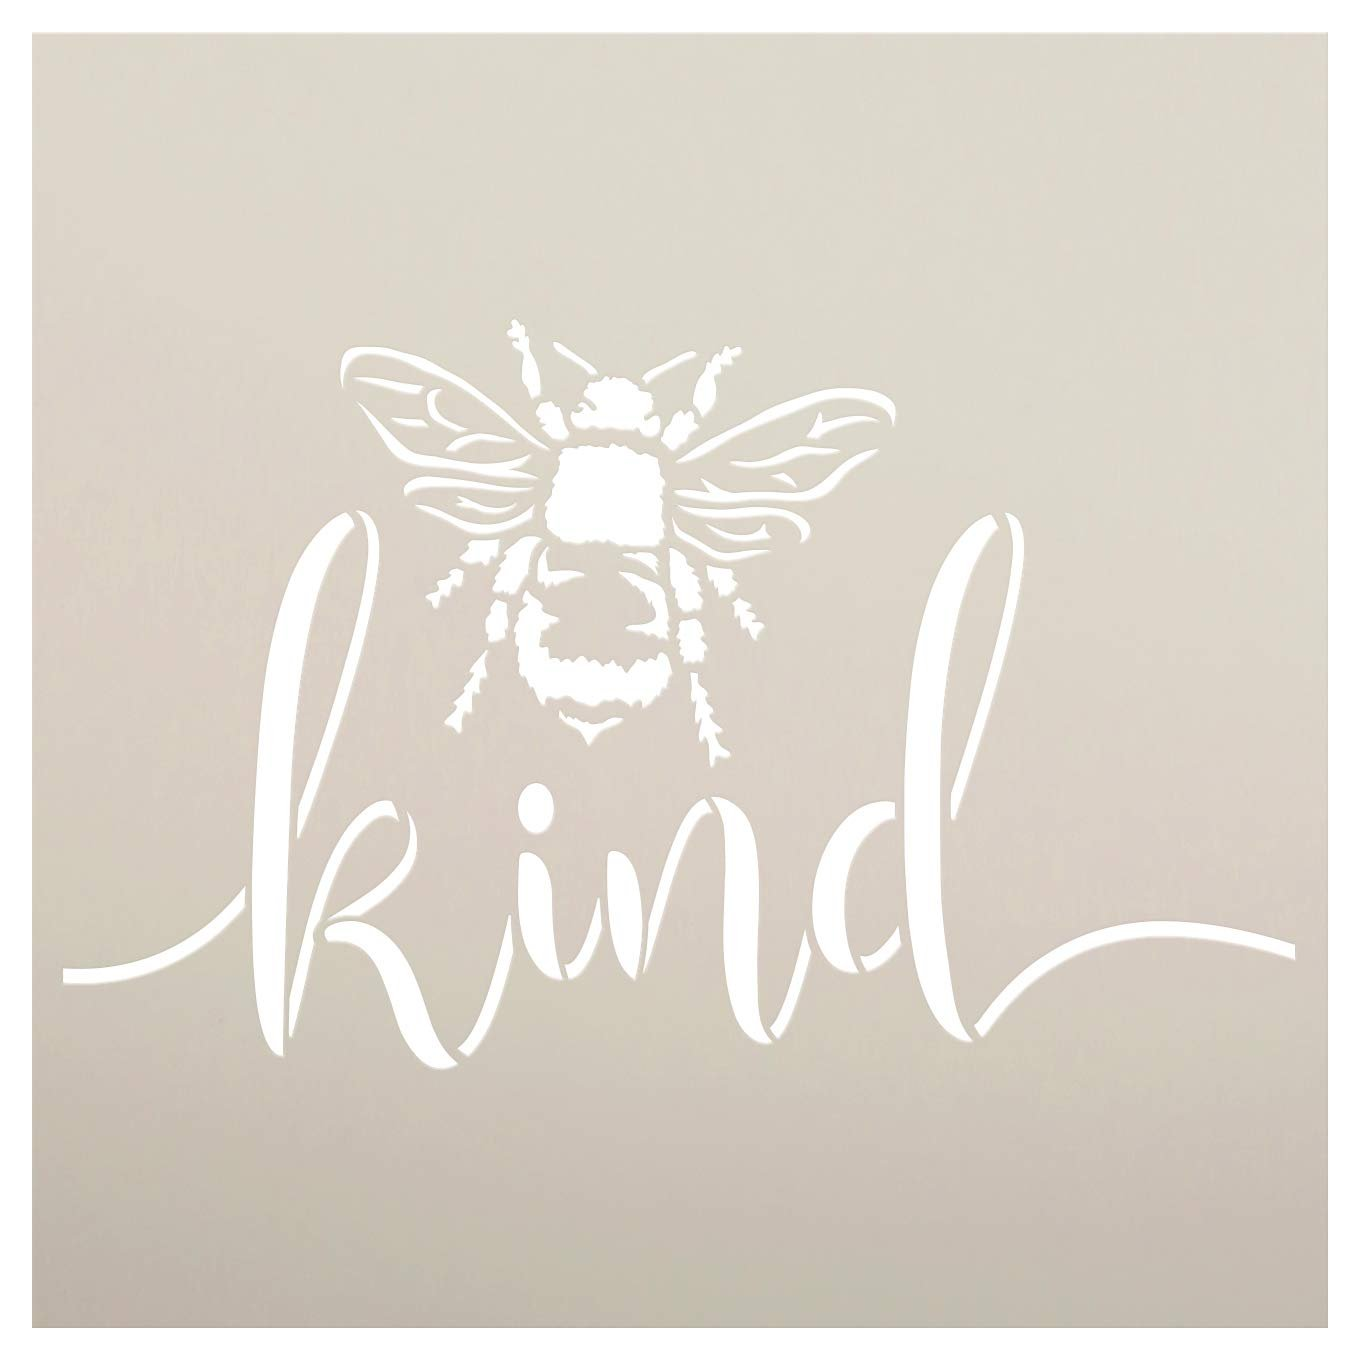 Bee Kind Stencil By Studior12 Diy Farmhouse Bumblebee Home Classroom Decor Spring Script Inspirational Word Art Craft Paint Wood Signs Reusable Mylar Template Select Size Creative Arts Lifestyle